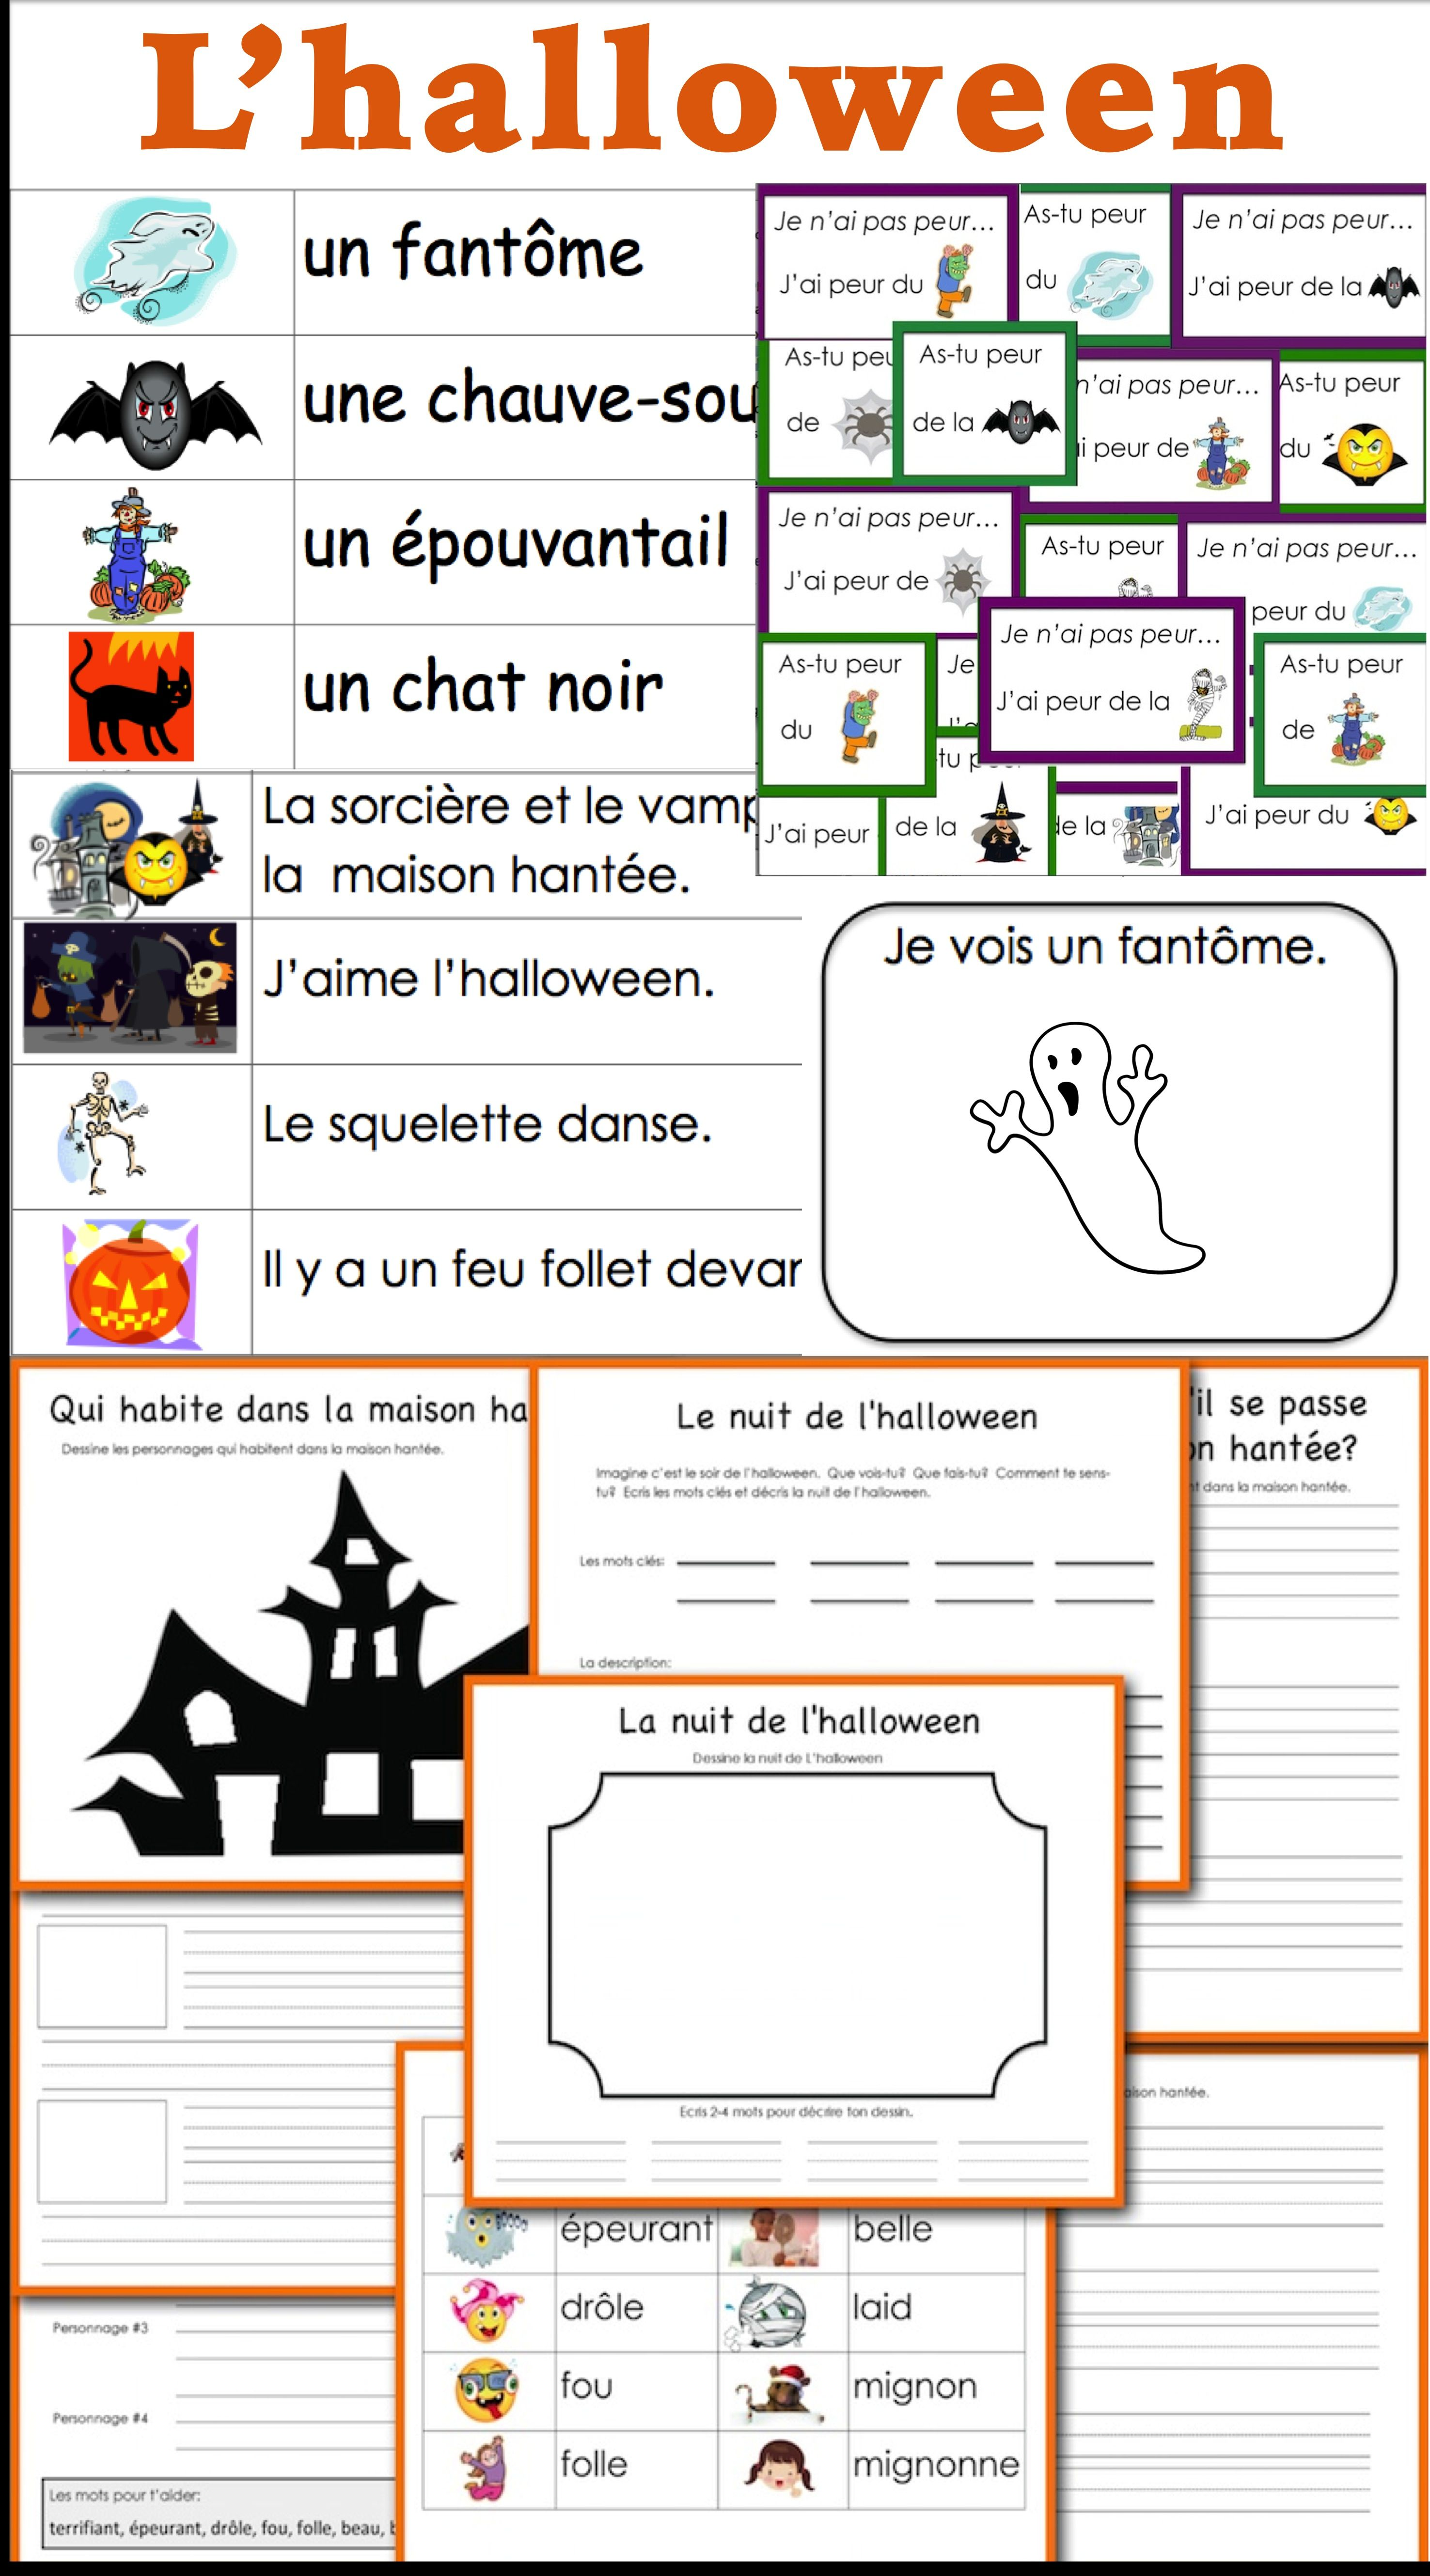 Lhalloween French Halloween Vocabulary And Writing Activities